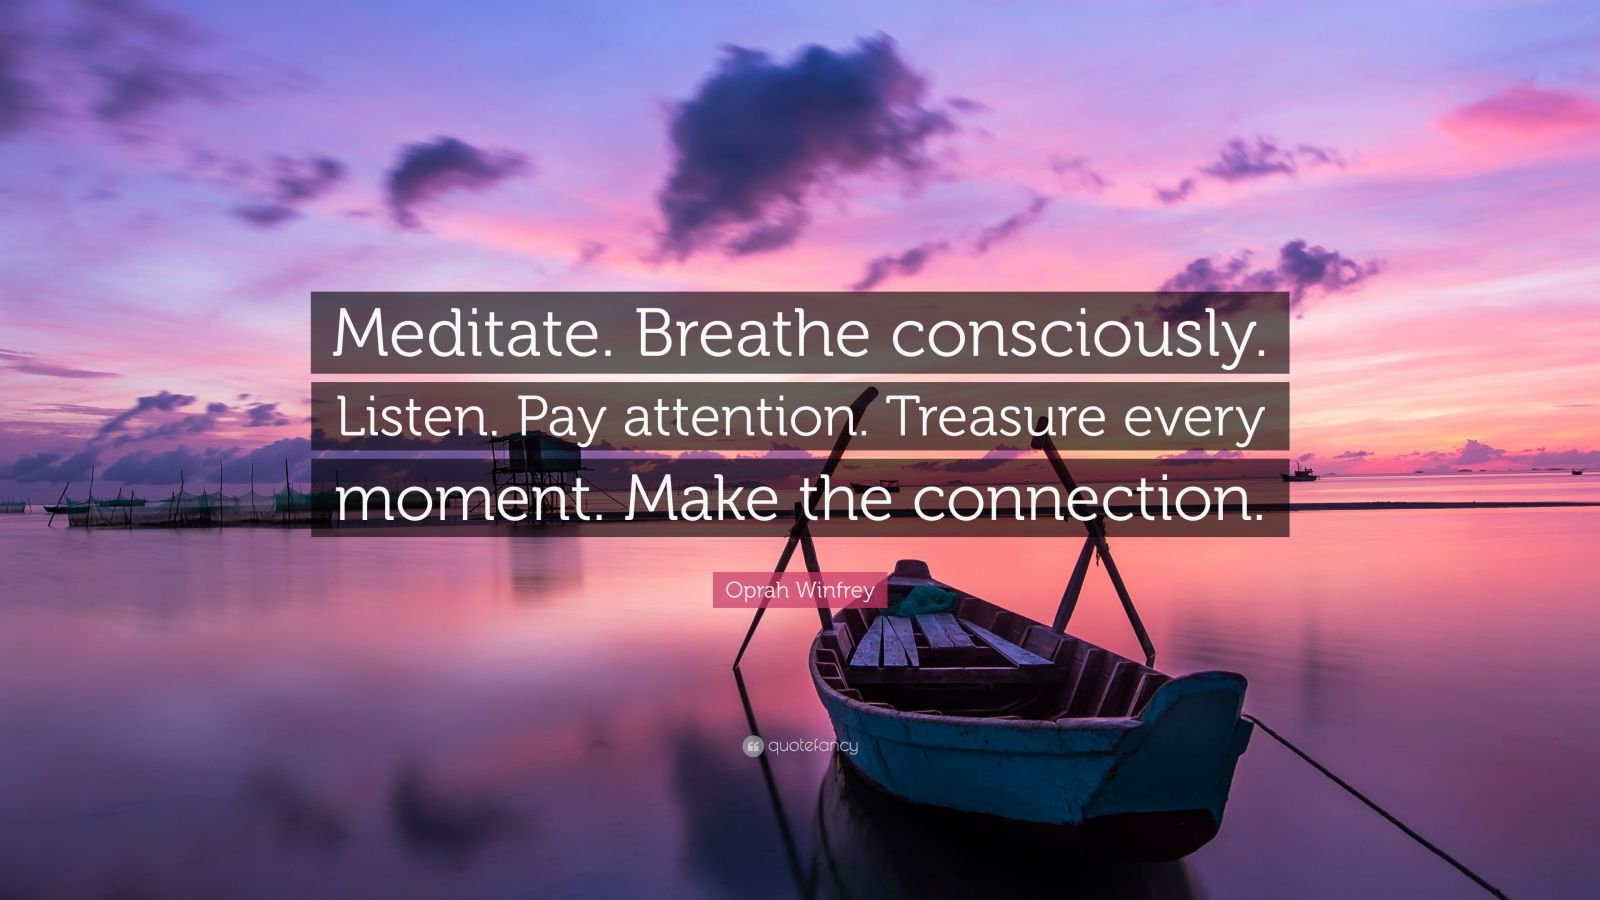 """Oprah Winfrey Quote: """"Meditate. Breathe consciously. Listen. Pay attention. Treasure every moment. Make the connection."""""""